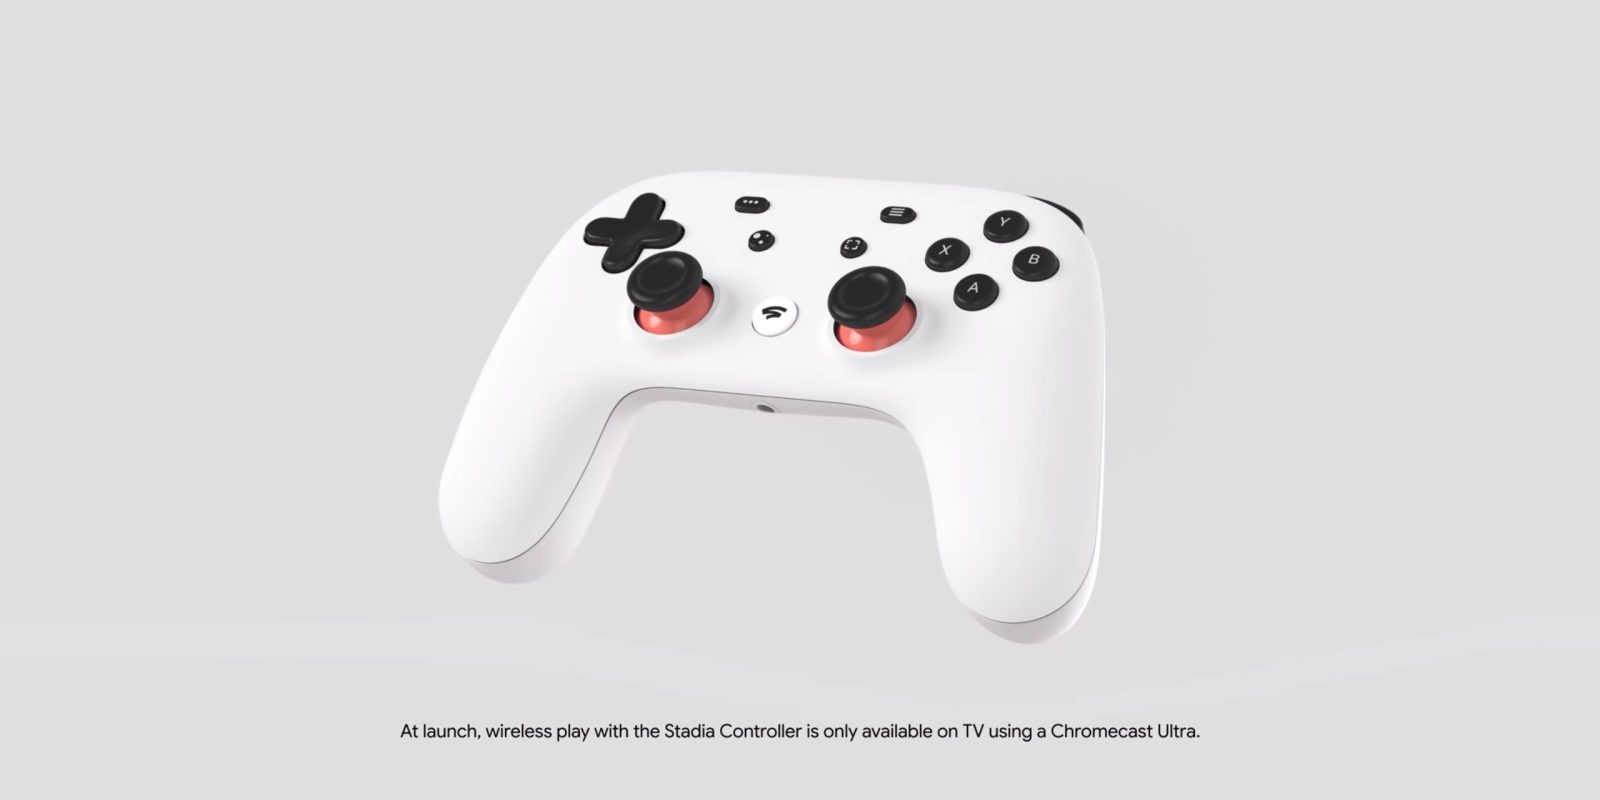 Stadia Controller will not work wirelessly with Pixels and desktops at launch